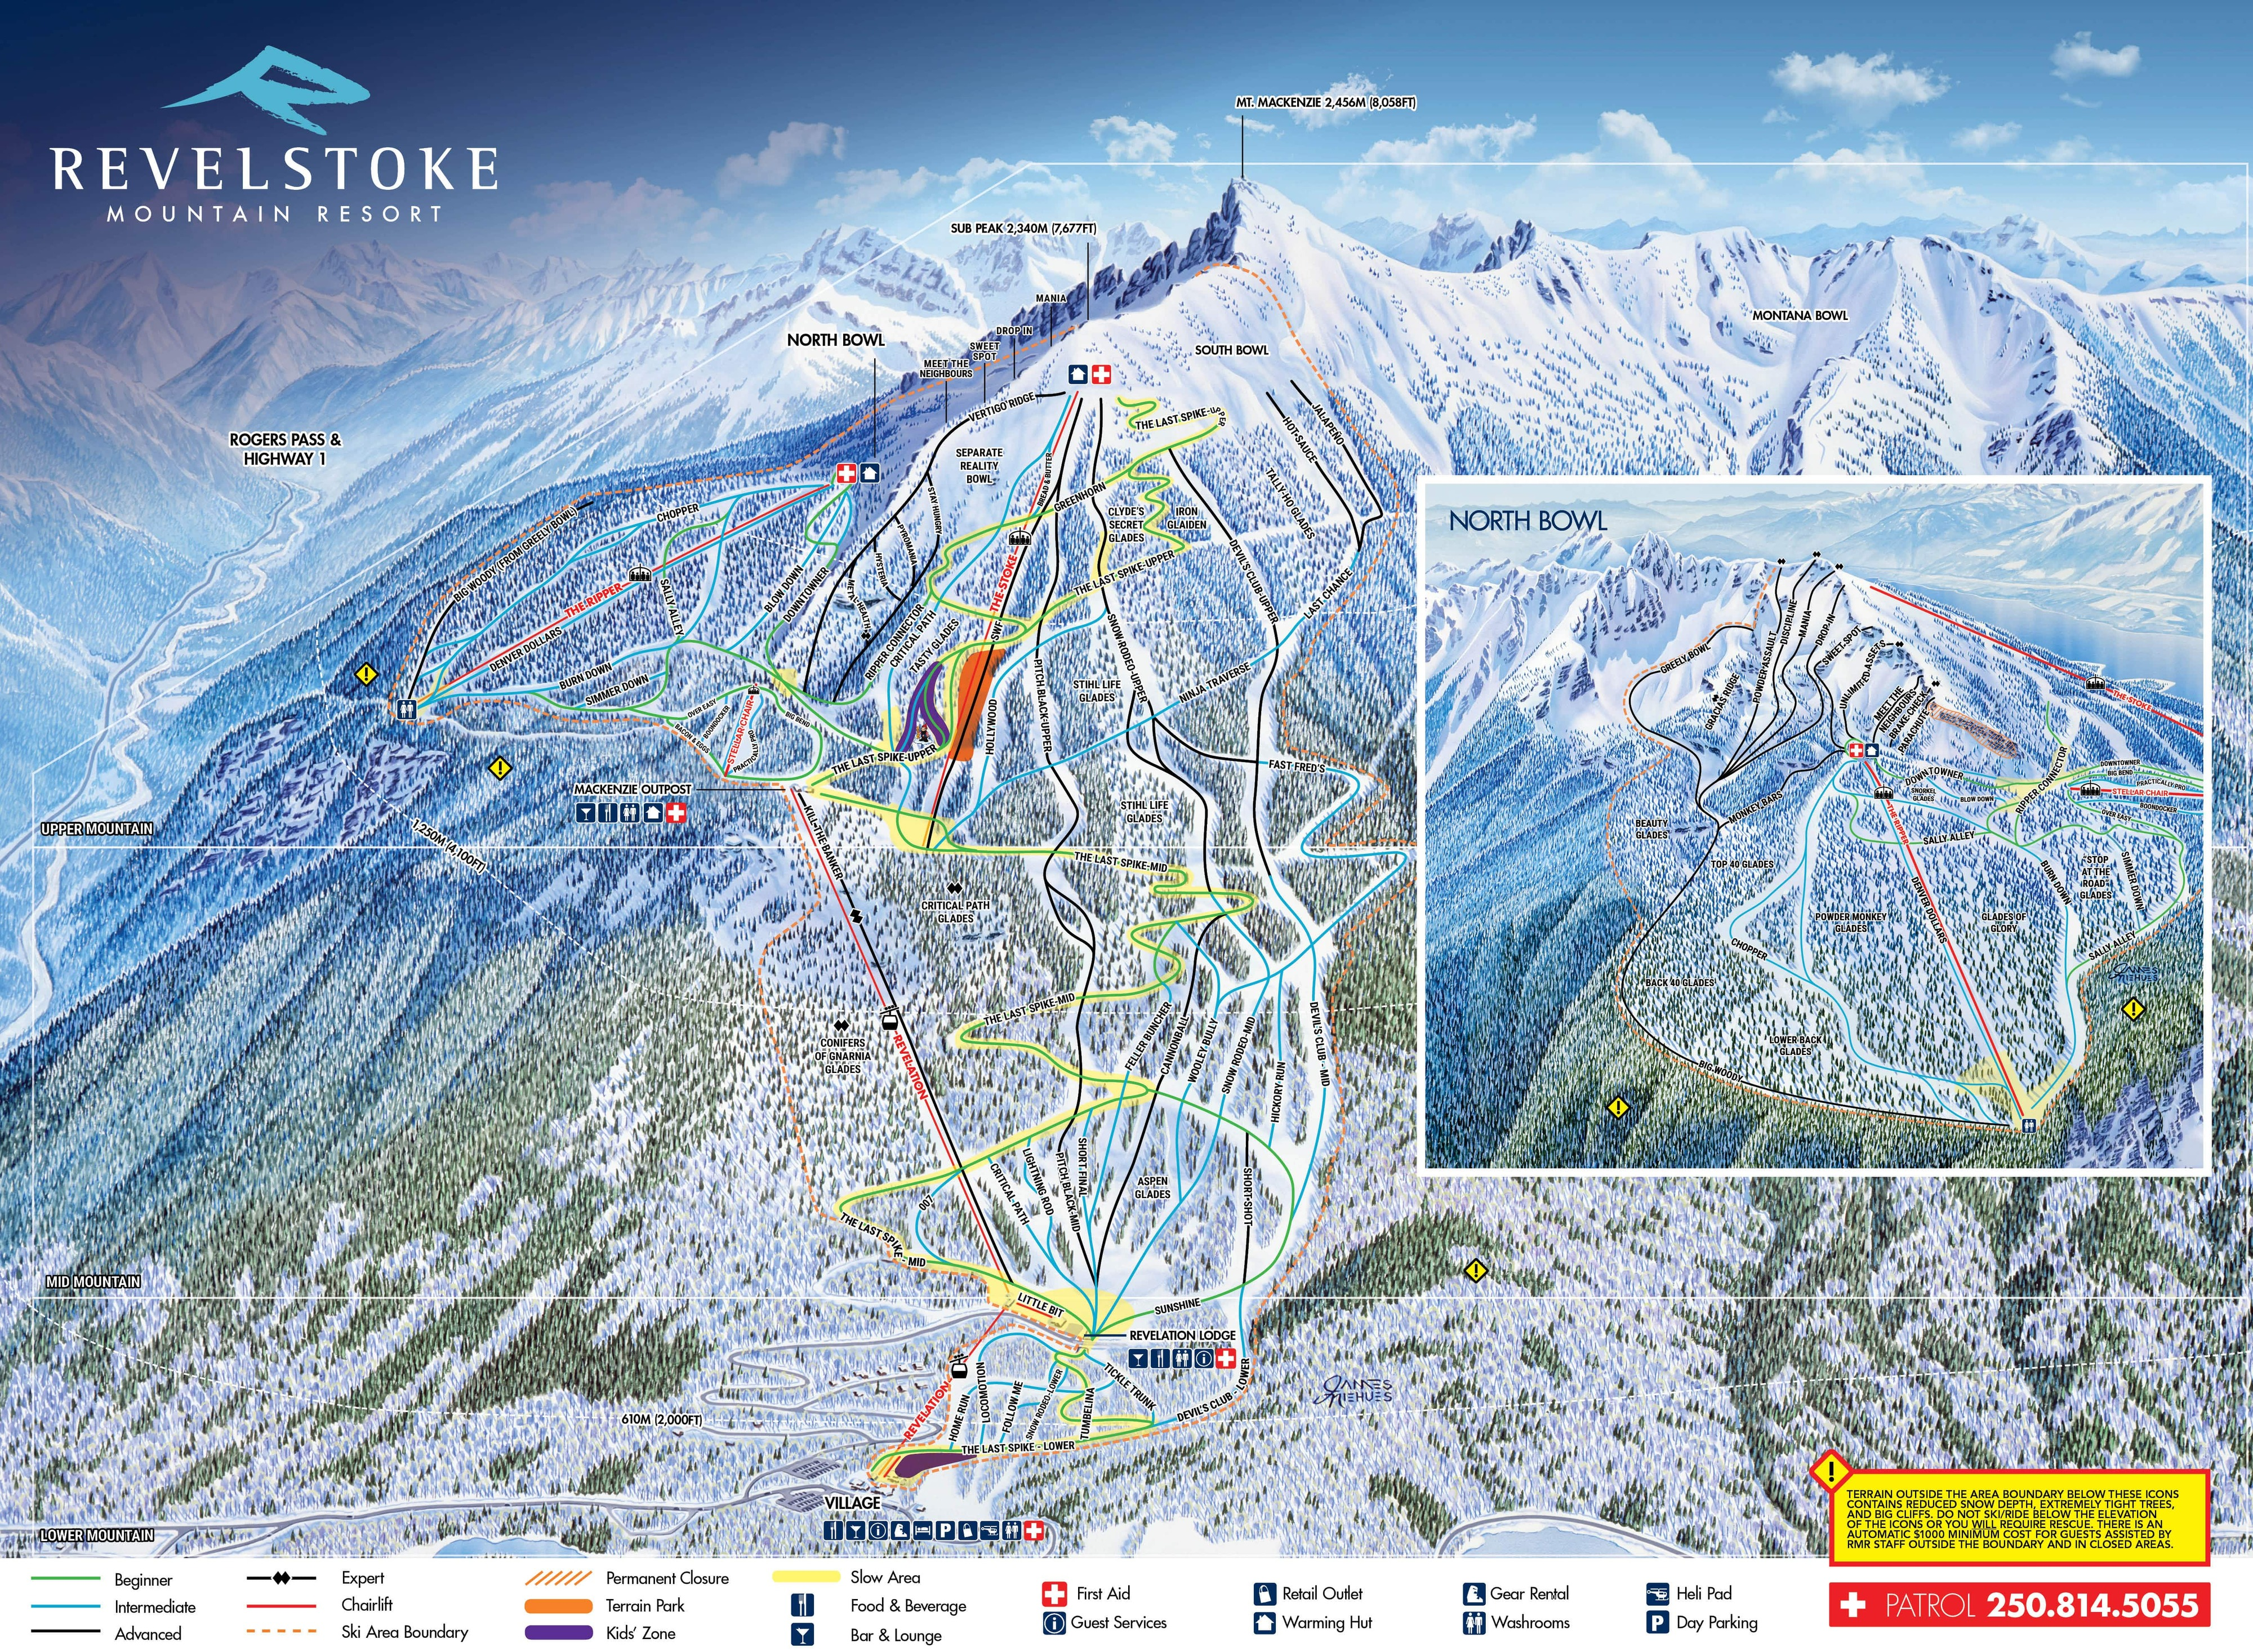 Revelstoke Mountain Resort Piste / Trail Map